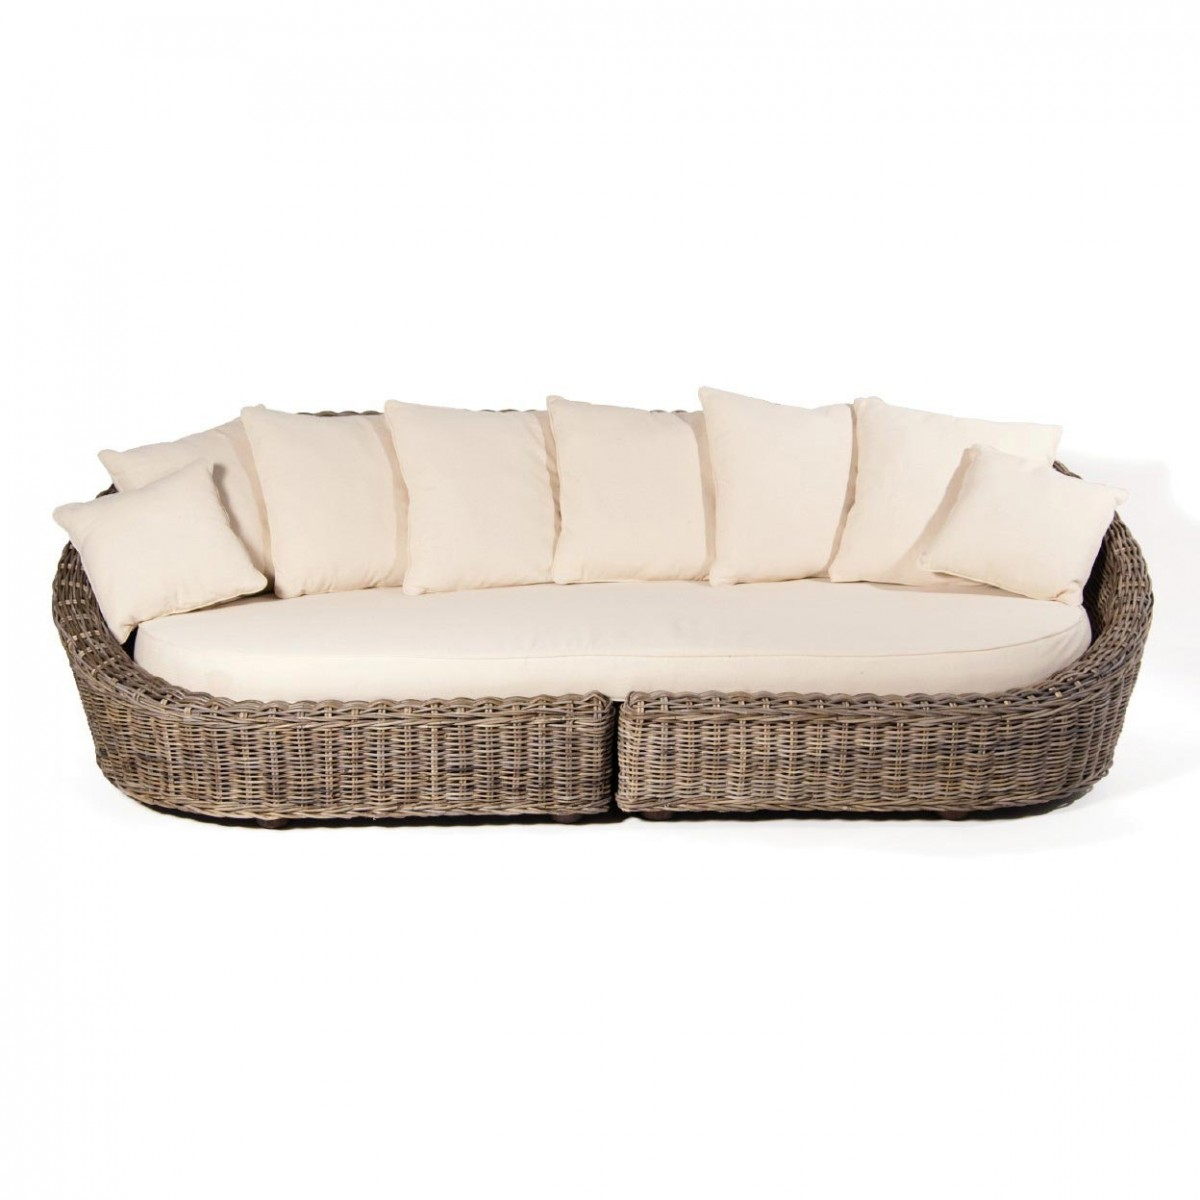 Full Size of Rattan Sofa Outdoor Indoor Vintage Set Argos Mauritius Furniture Bedroom Table Cushions Uk Aldi Asda Cover And Chairs Couches For Sale Dining Rattansofa U Form Sofa Rattan Sofa